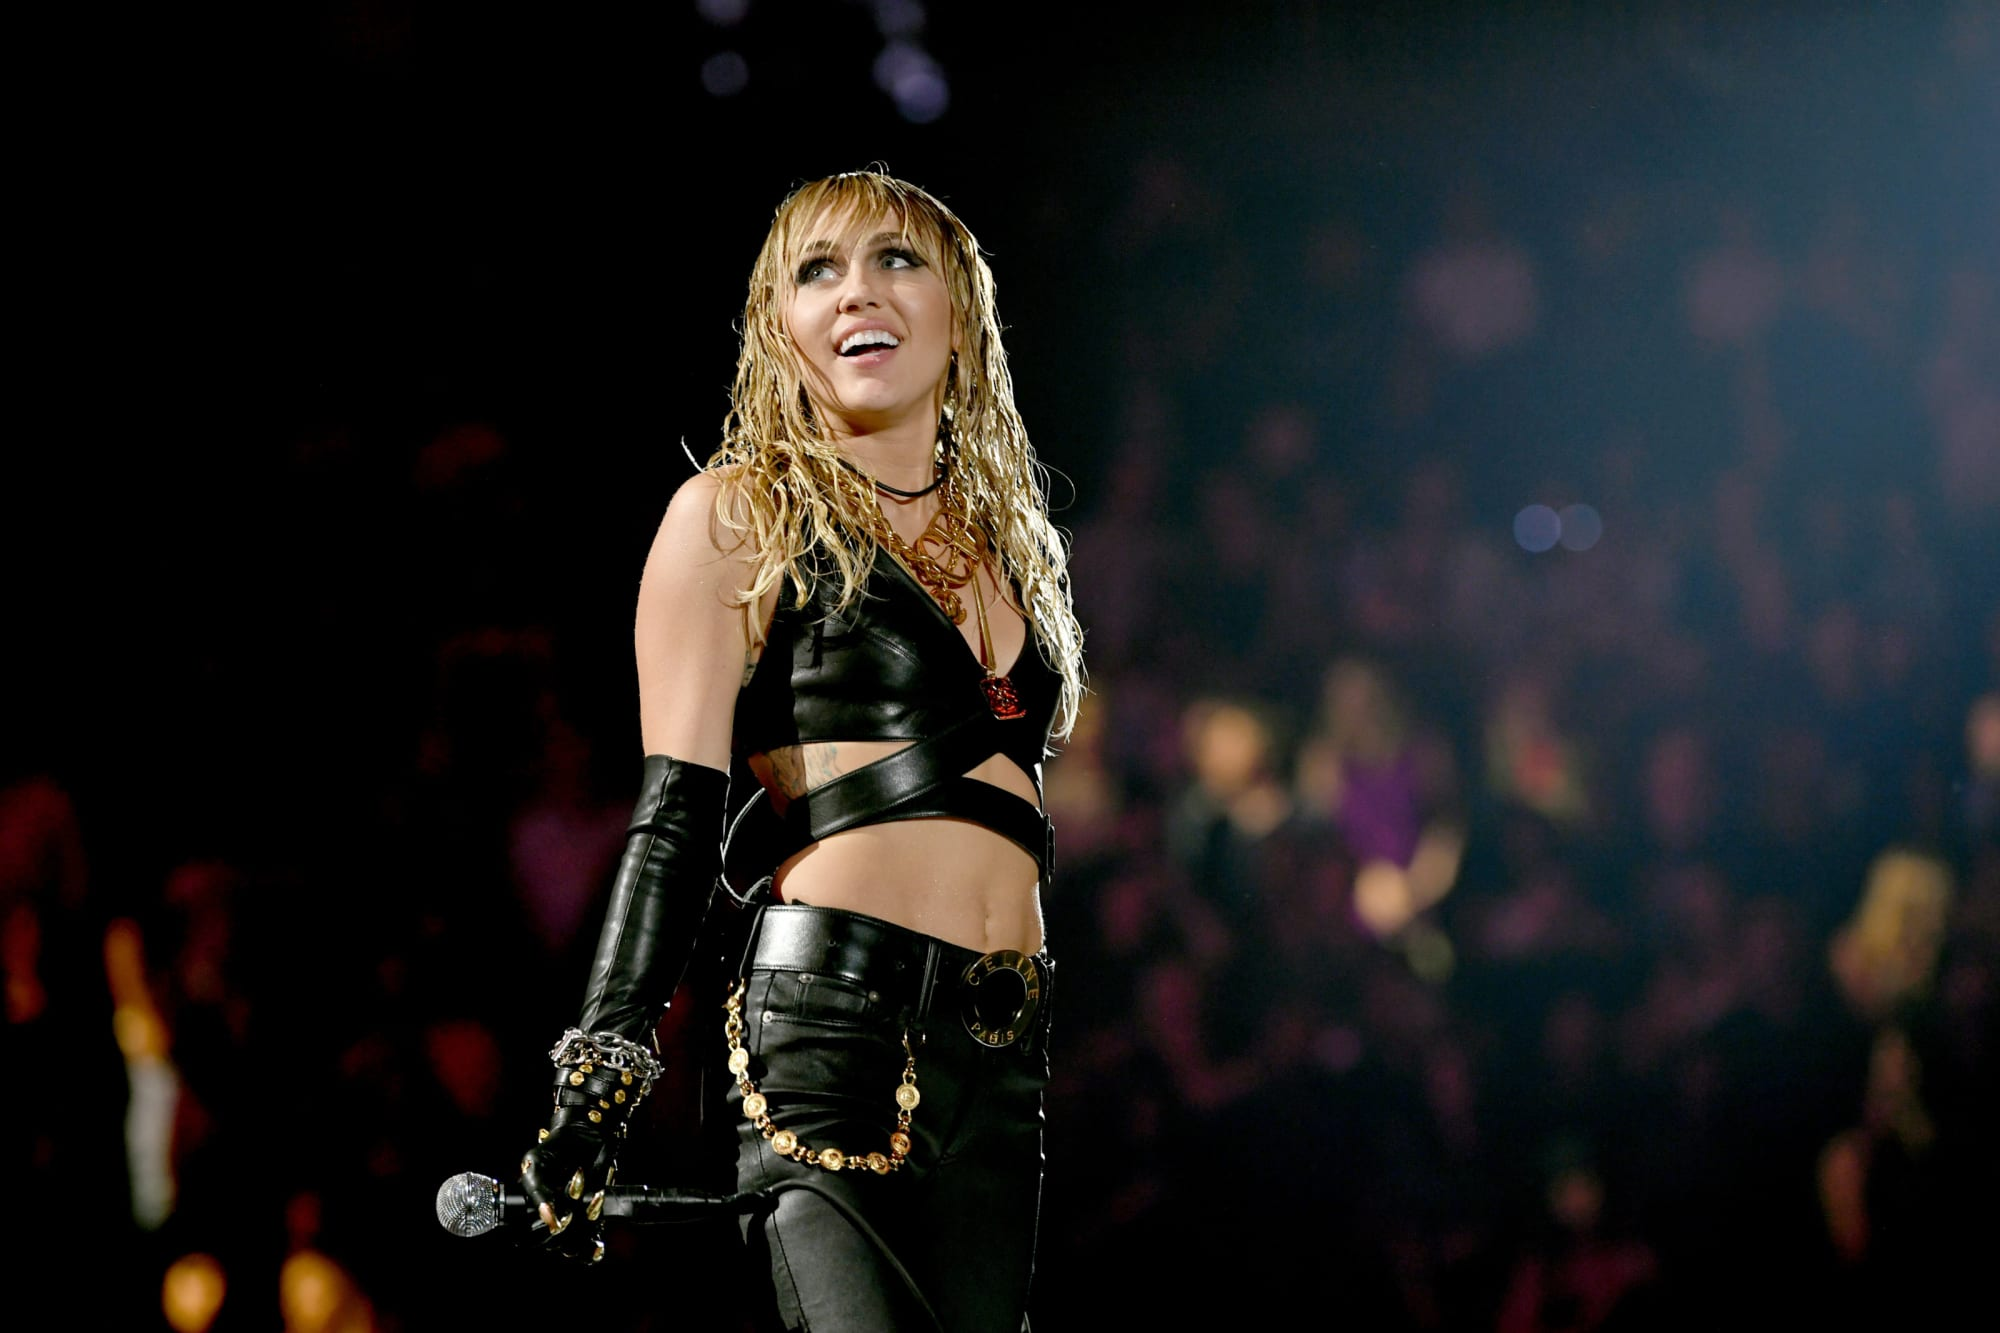 The 5 most underrated Miley Cyrus songs